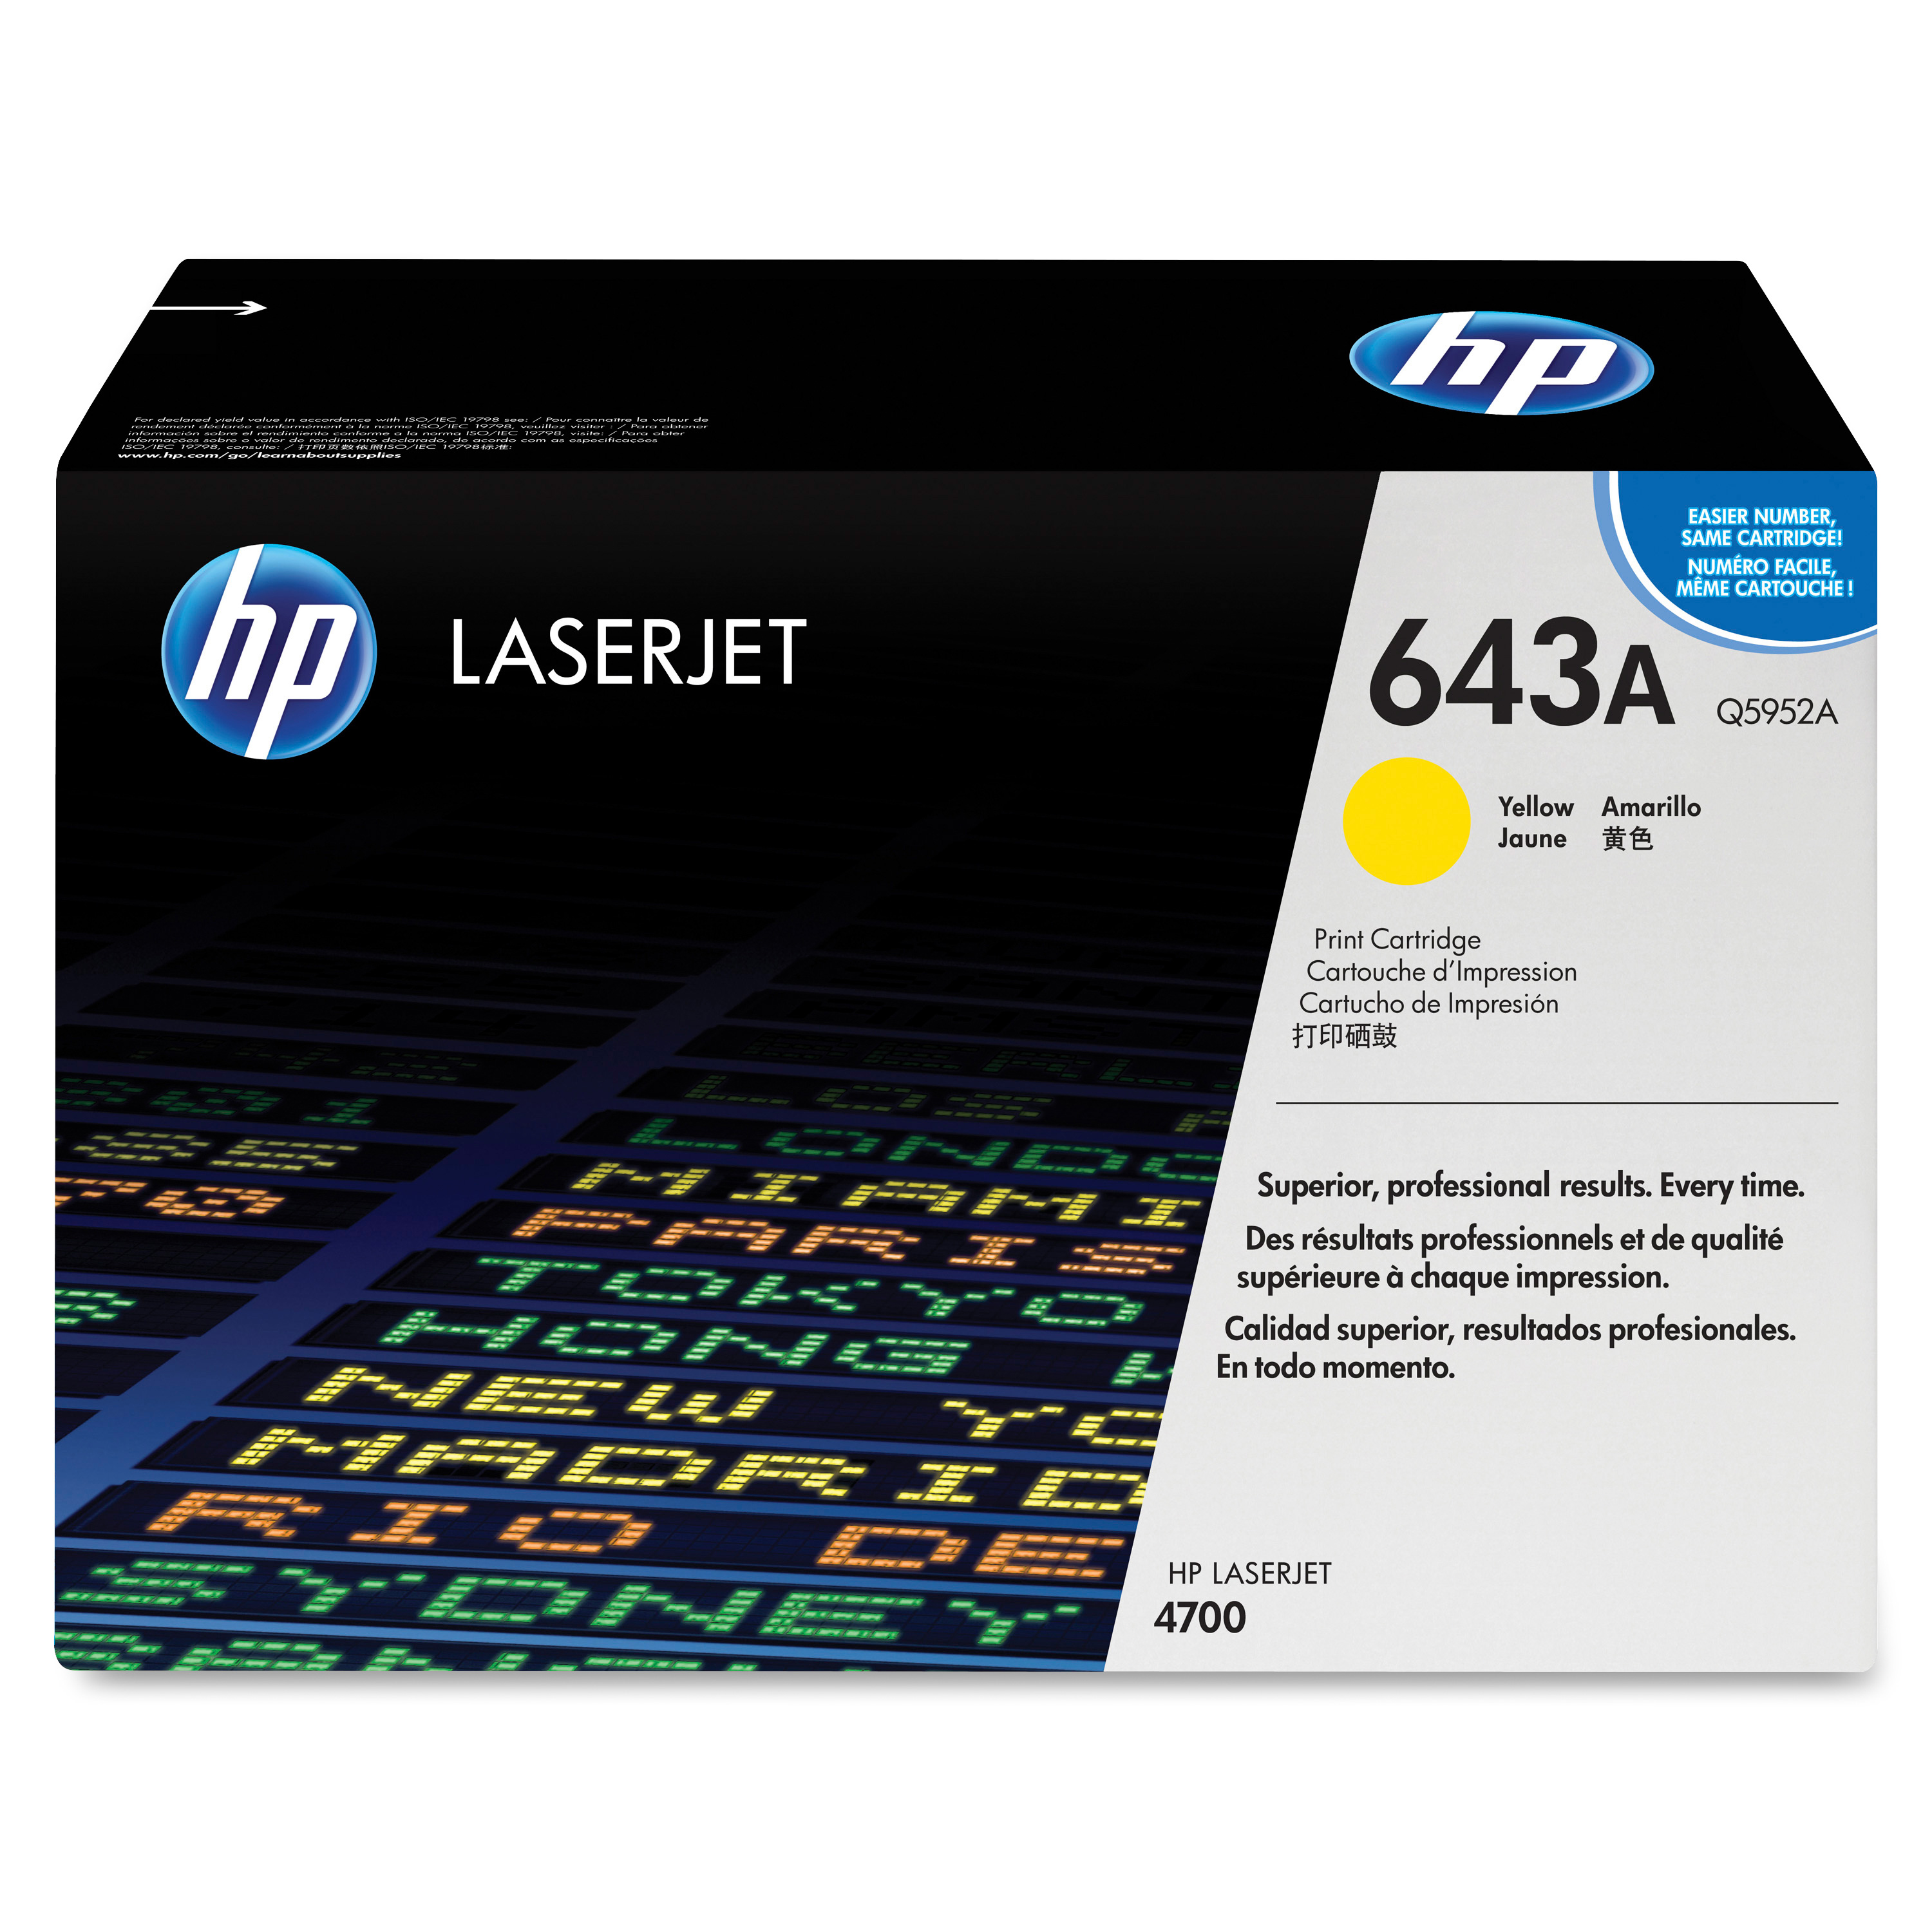 HP 643A Yellow Toner Cartridge, Q5952A